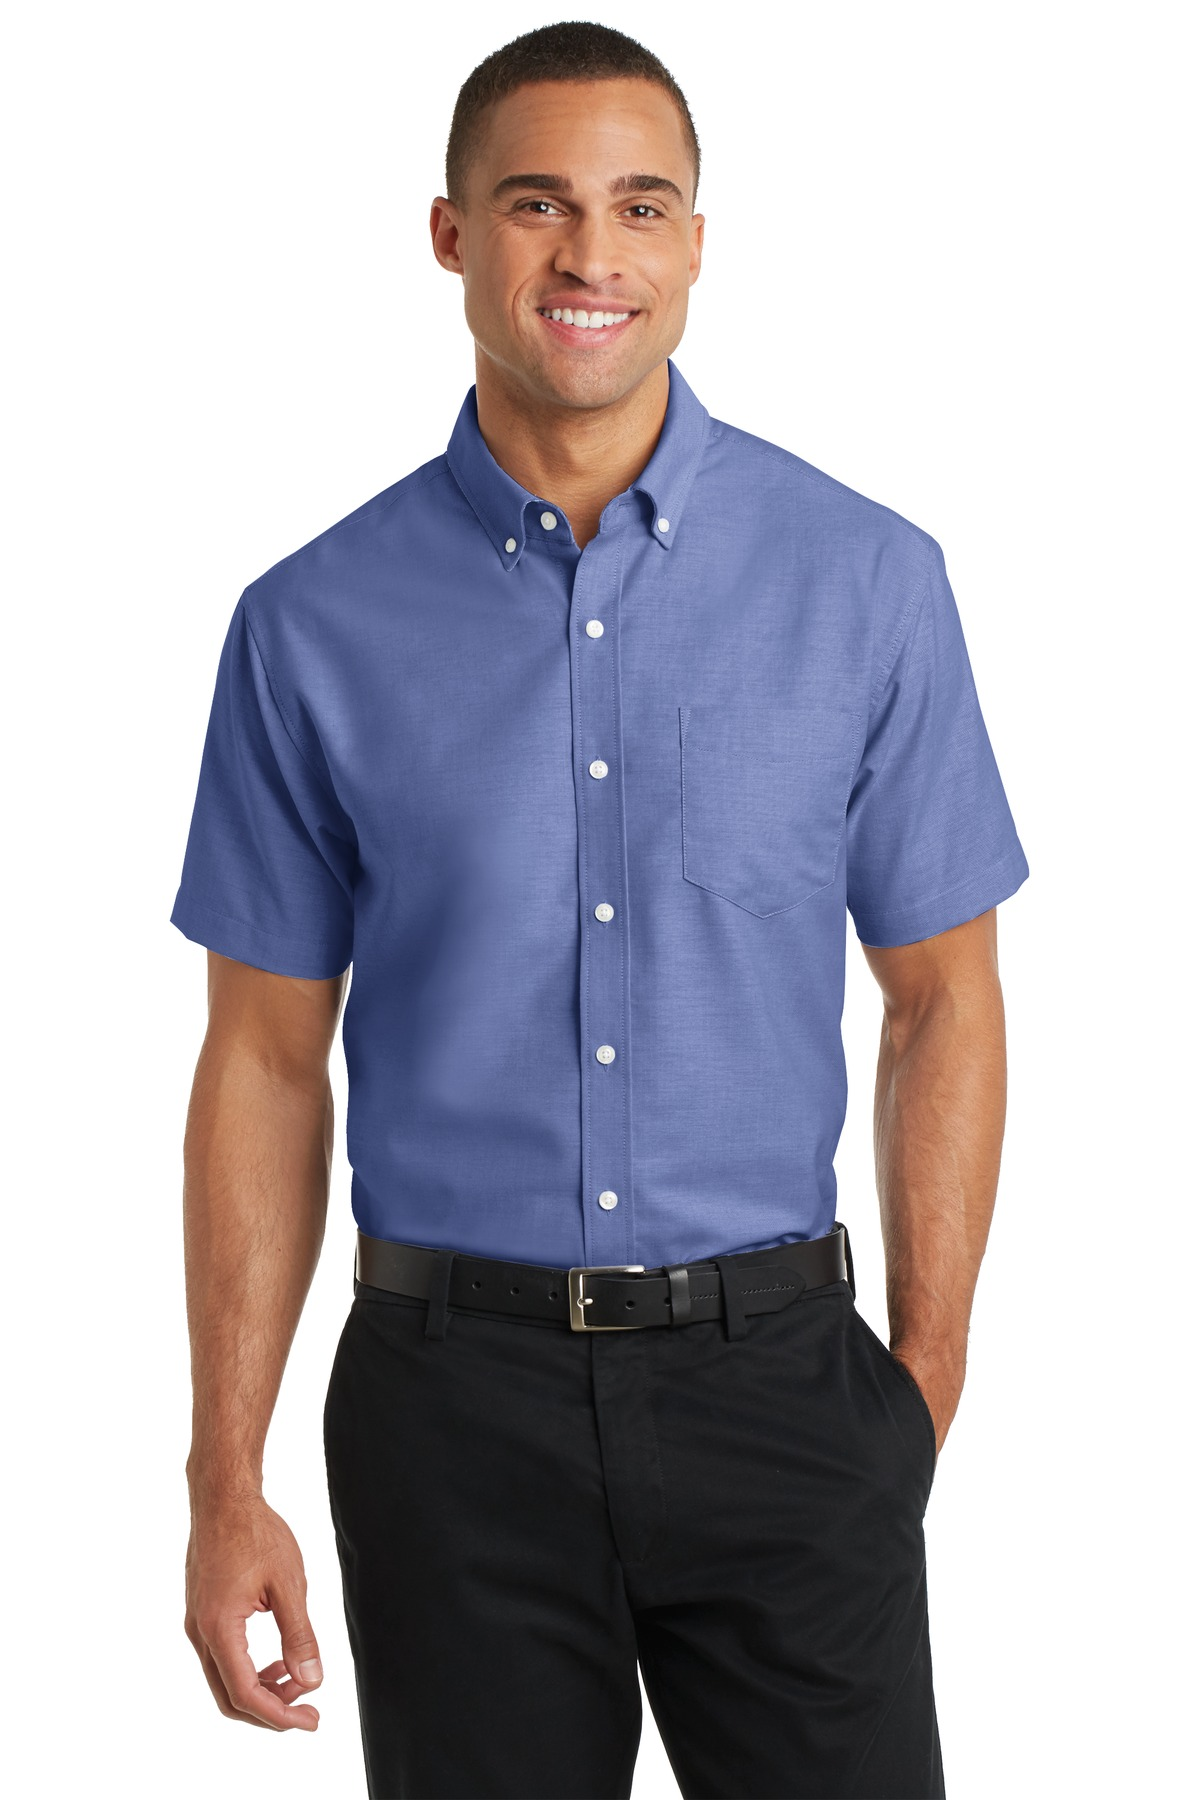 Port authority men 39 s short sleeve superpro oxford shirt s659 for Short sleeved shirts for men